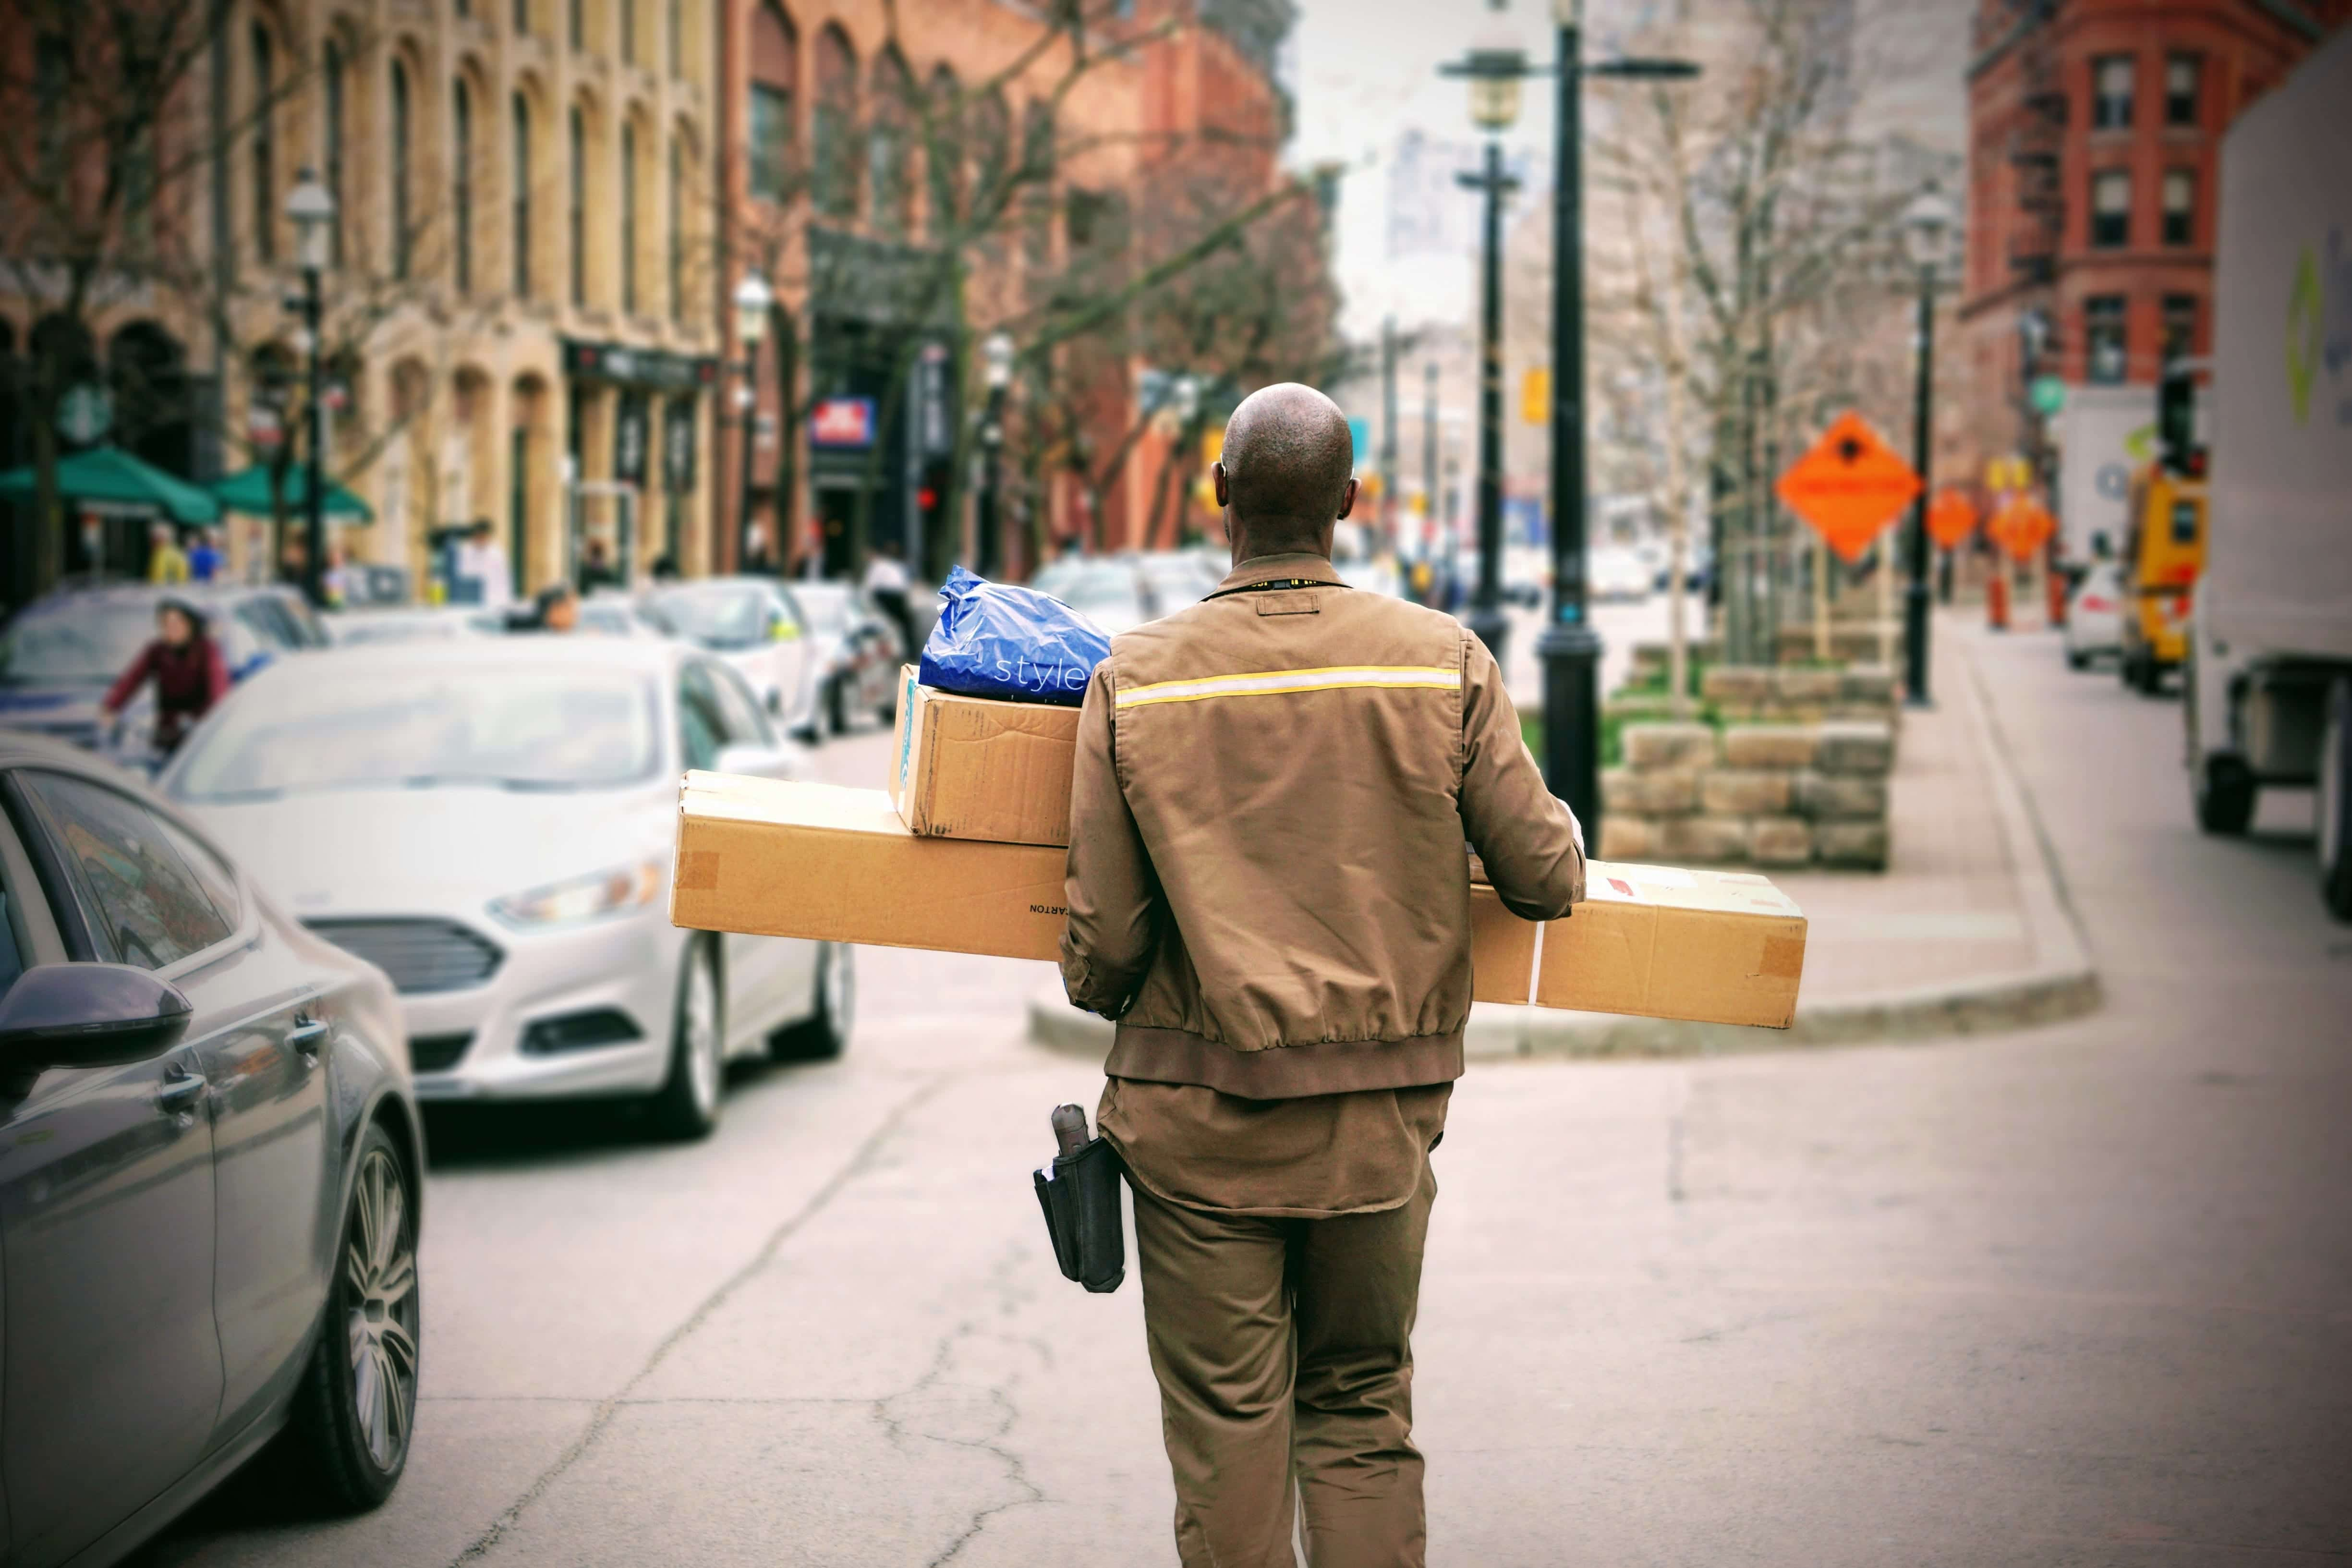 UPS employee in uniform carrying packages; image by Maarten van den Heuvel, via unsplash.com.